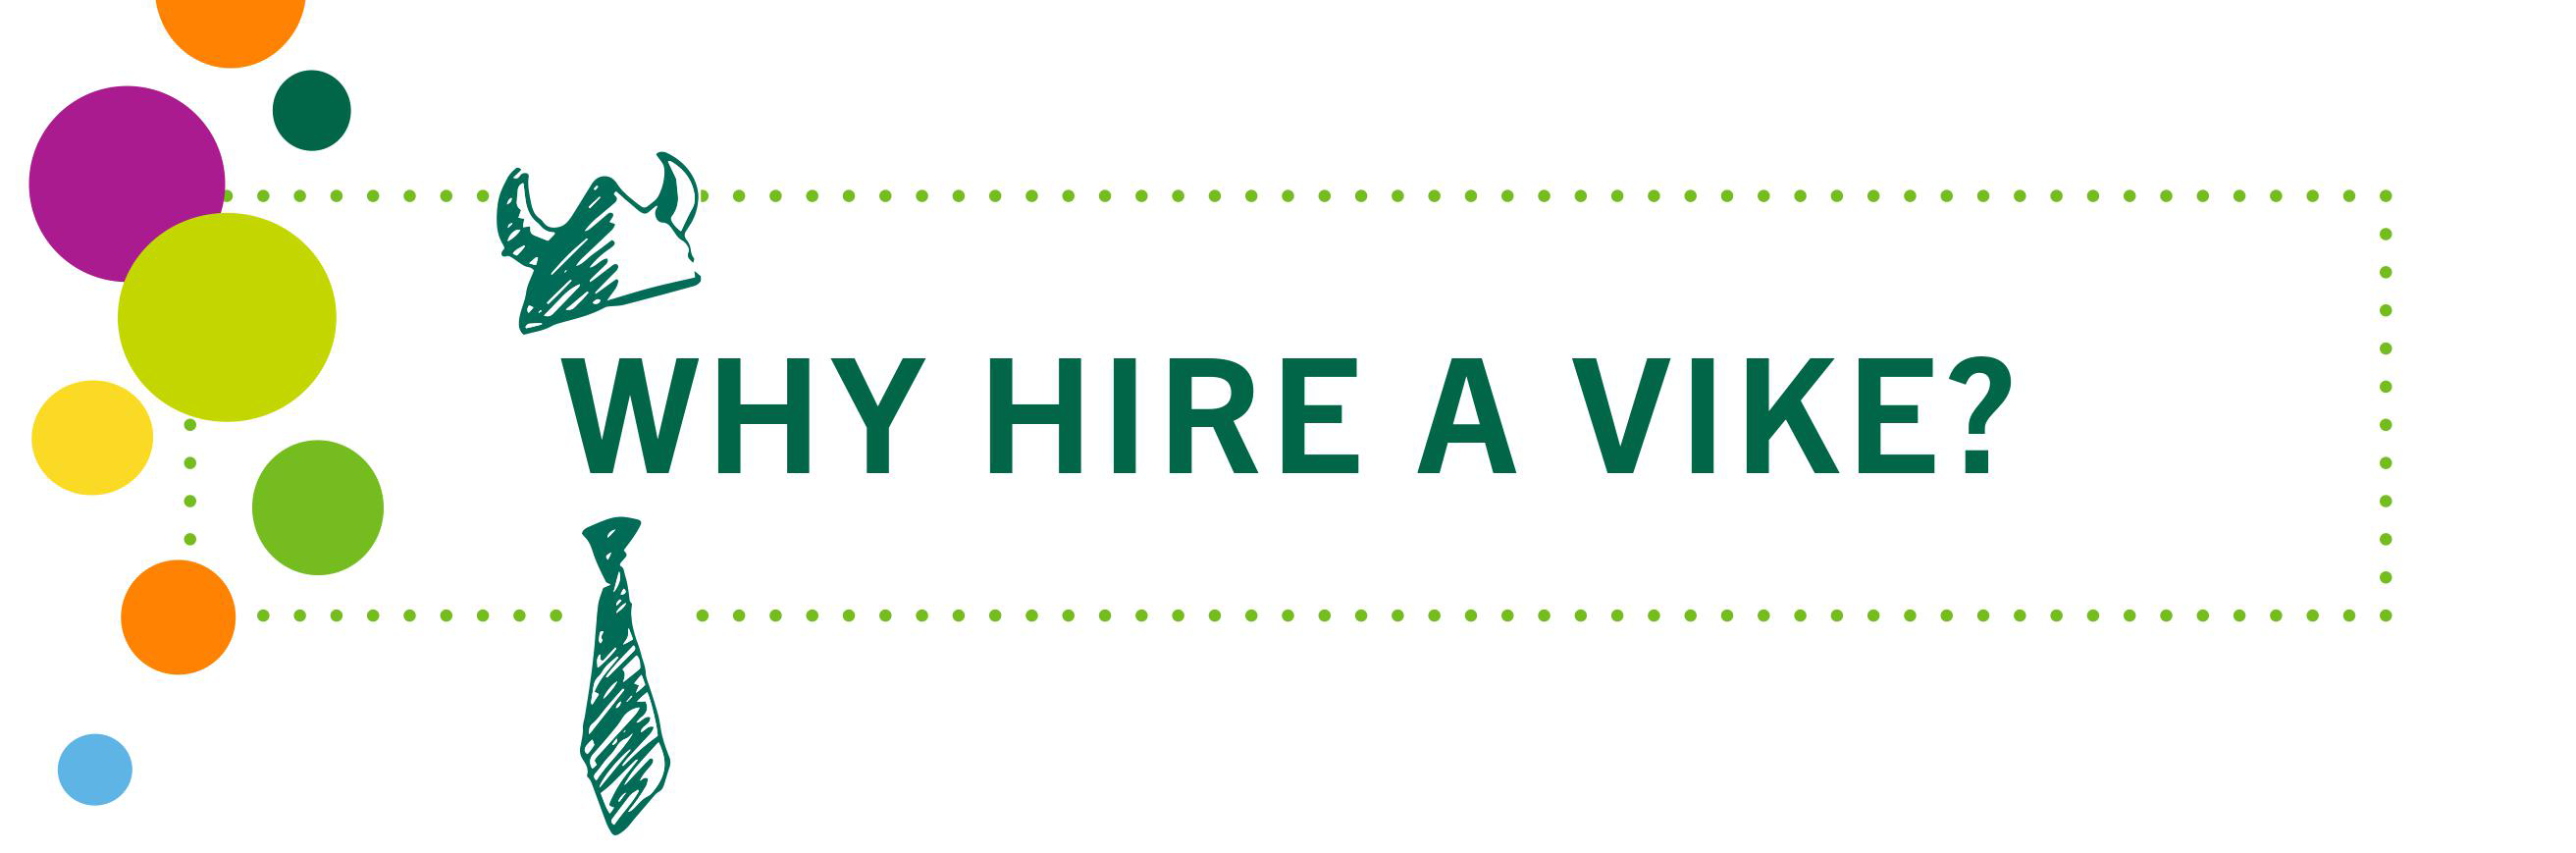 Why Hire A Vike